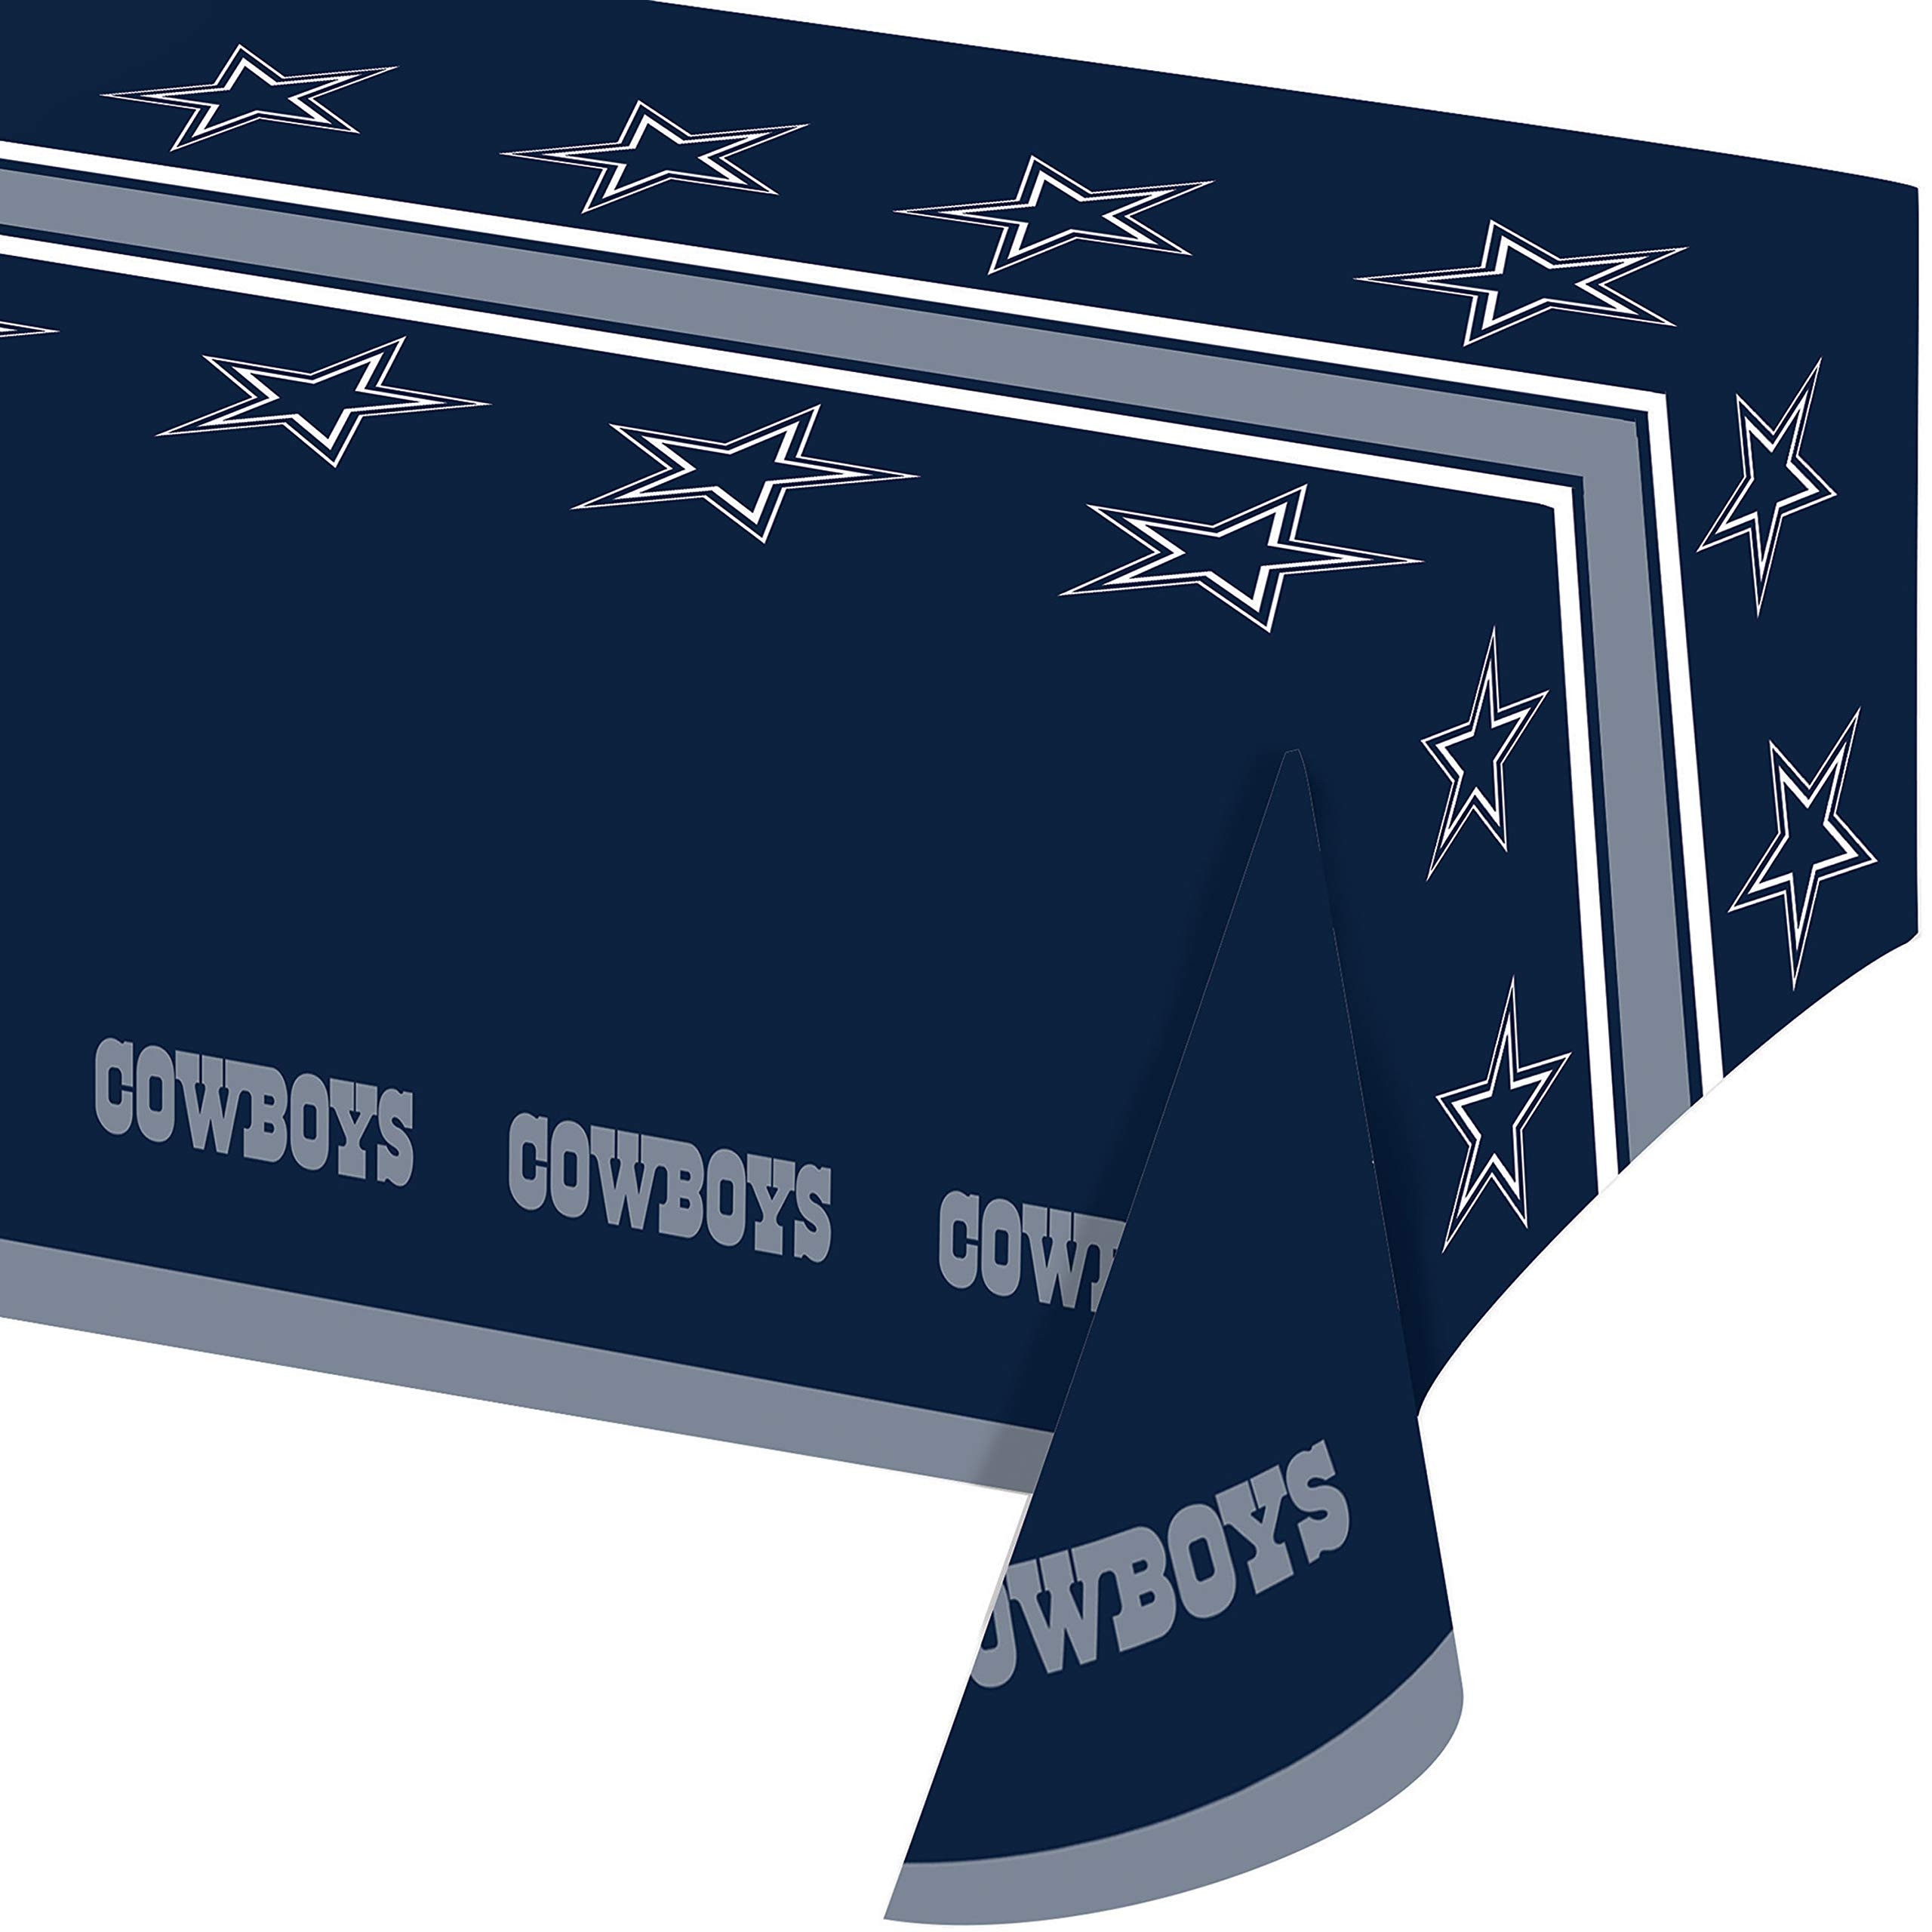 Dallas Cowboys Plastic Tablecloths, 3 ct by Creative Converting